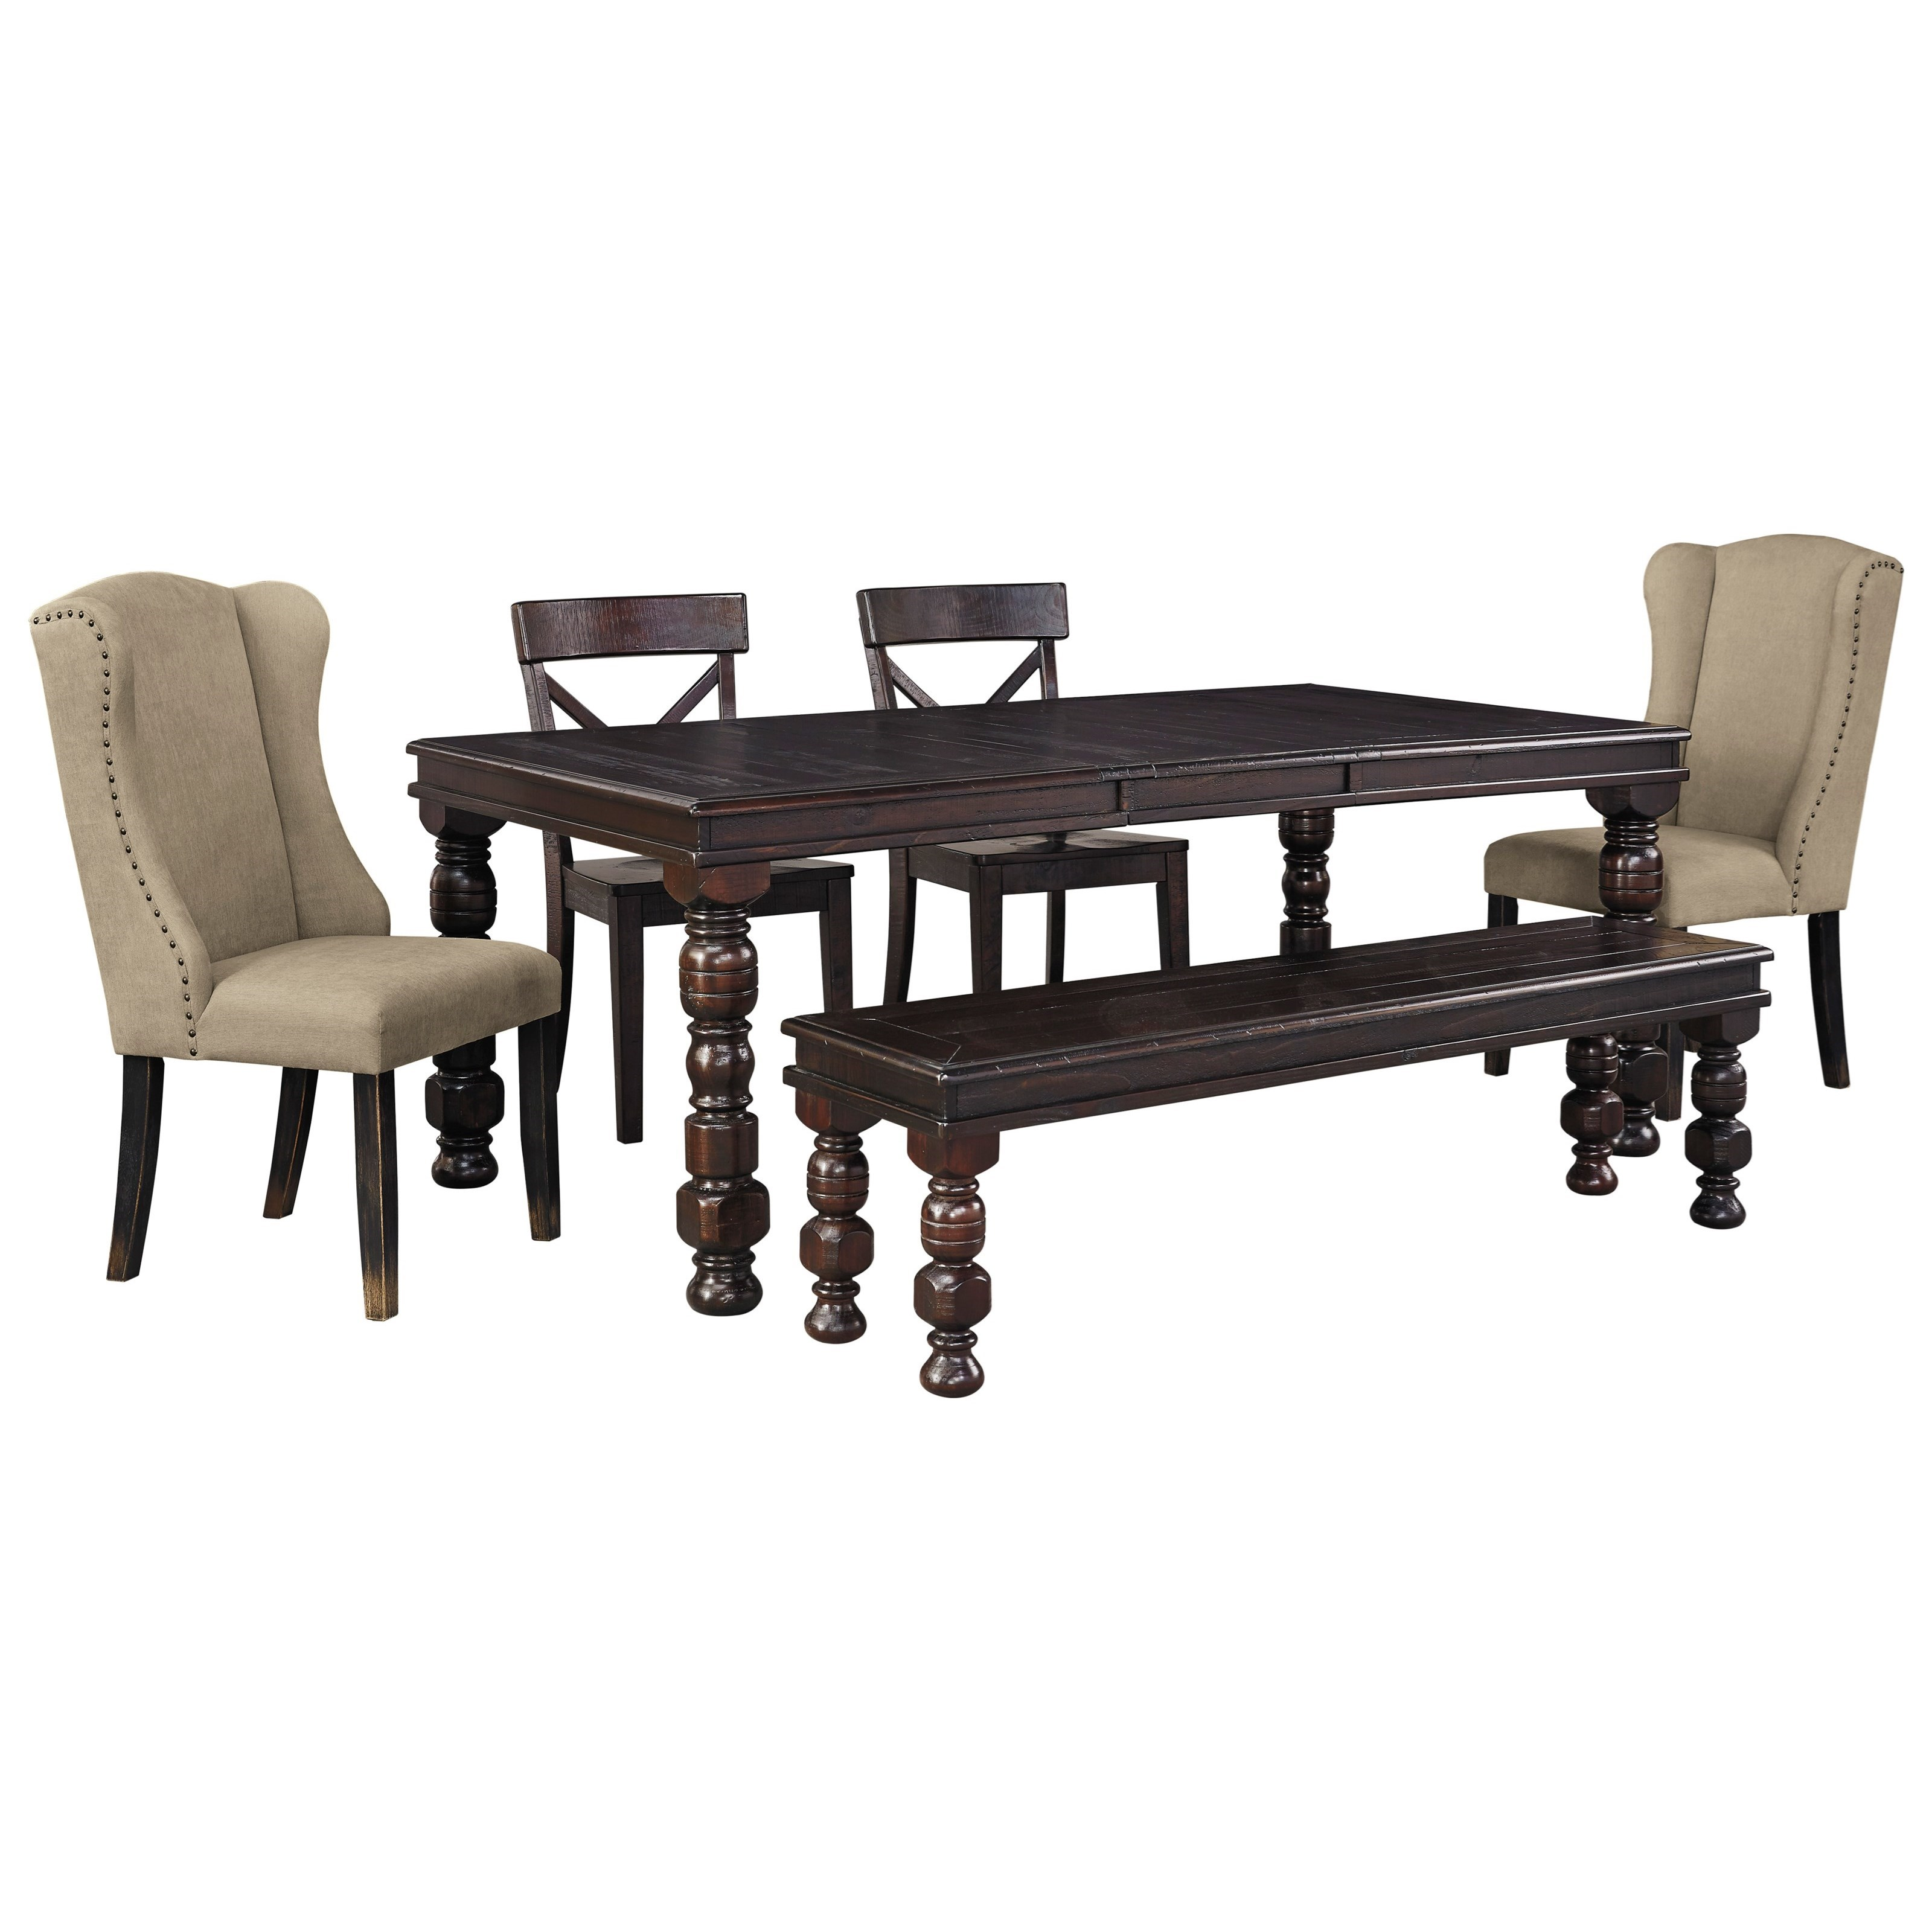 Signature Design by Ashley Gerlane 6-Piece Dining Table Set with Bench - Item Number: D657-35+2x02+2x01+00